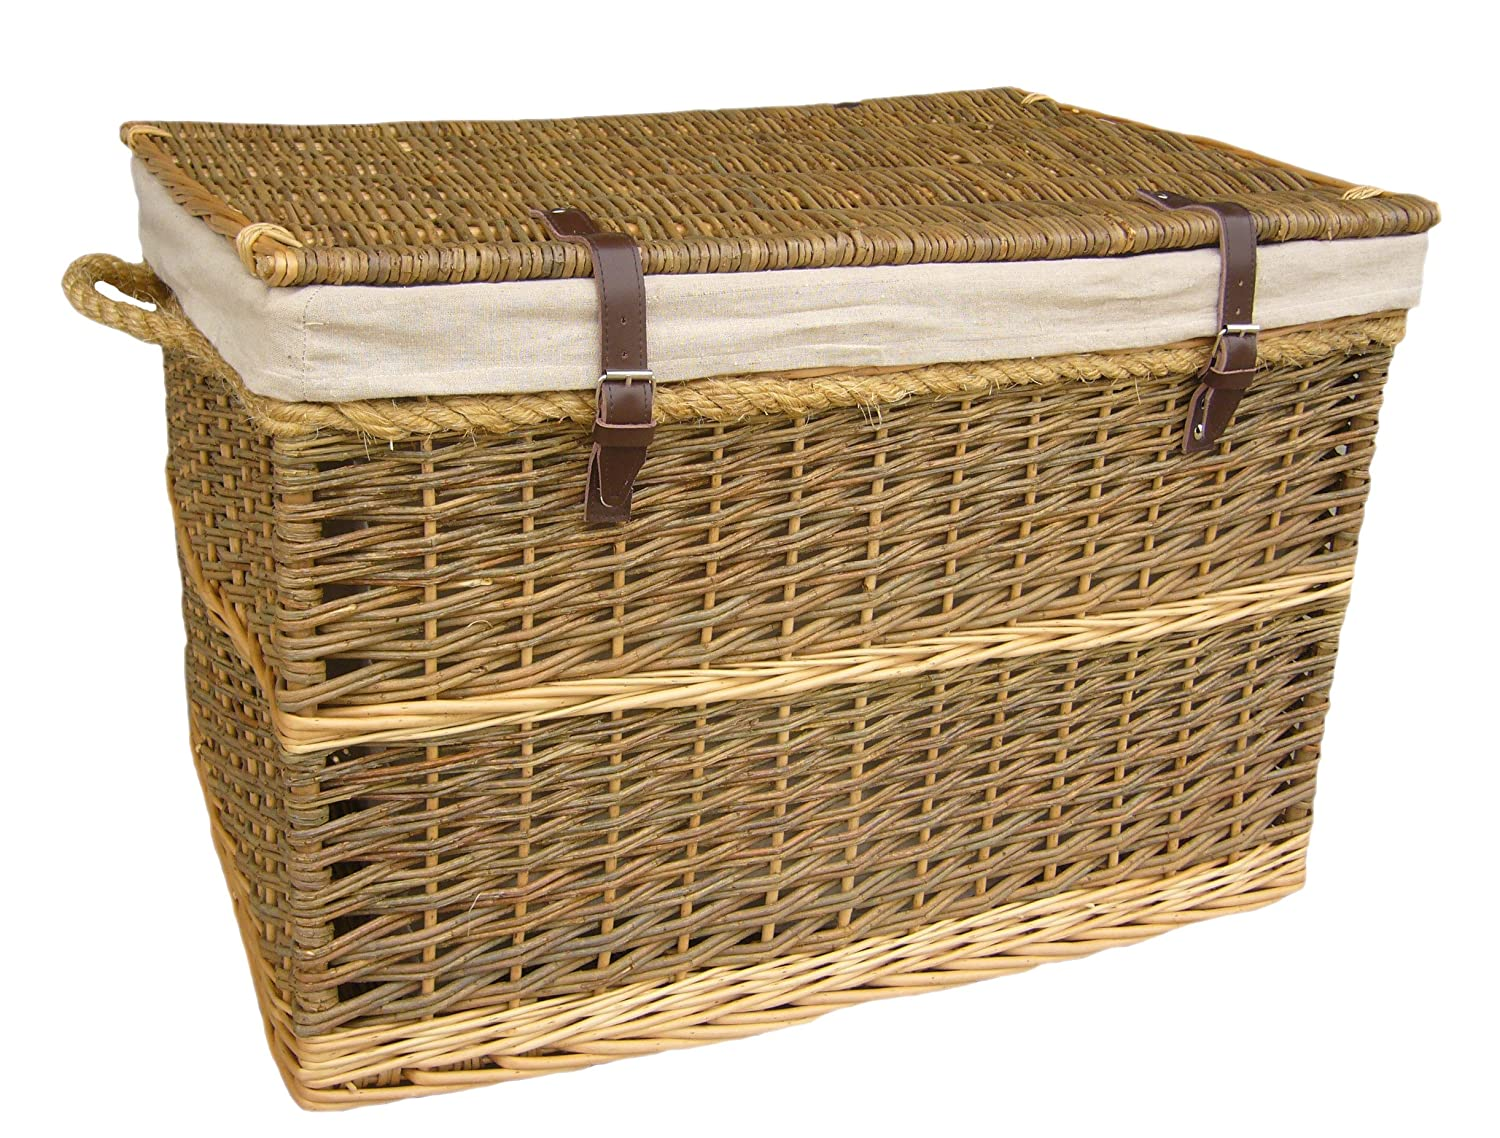 Captivating Extra Large Wicker Willow, Lined Storage Hamper. Ideal For Clothes, Toys,  Etc.: Amazon.co.uk: Kitchen U0026 Home